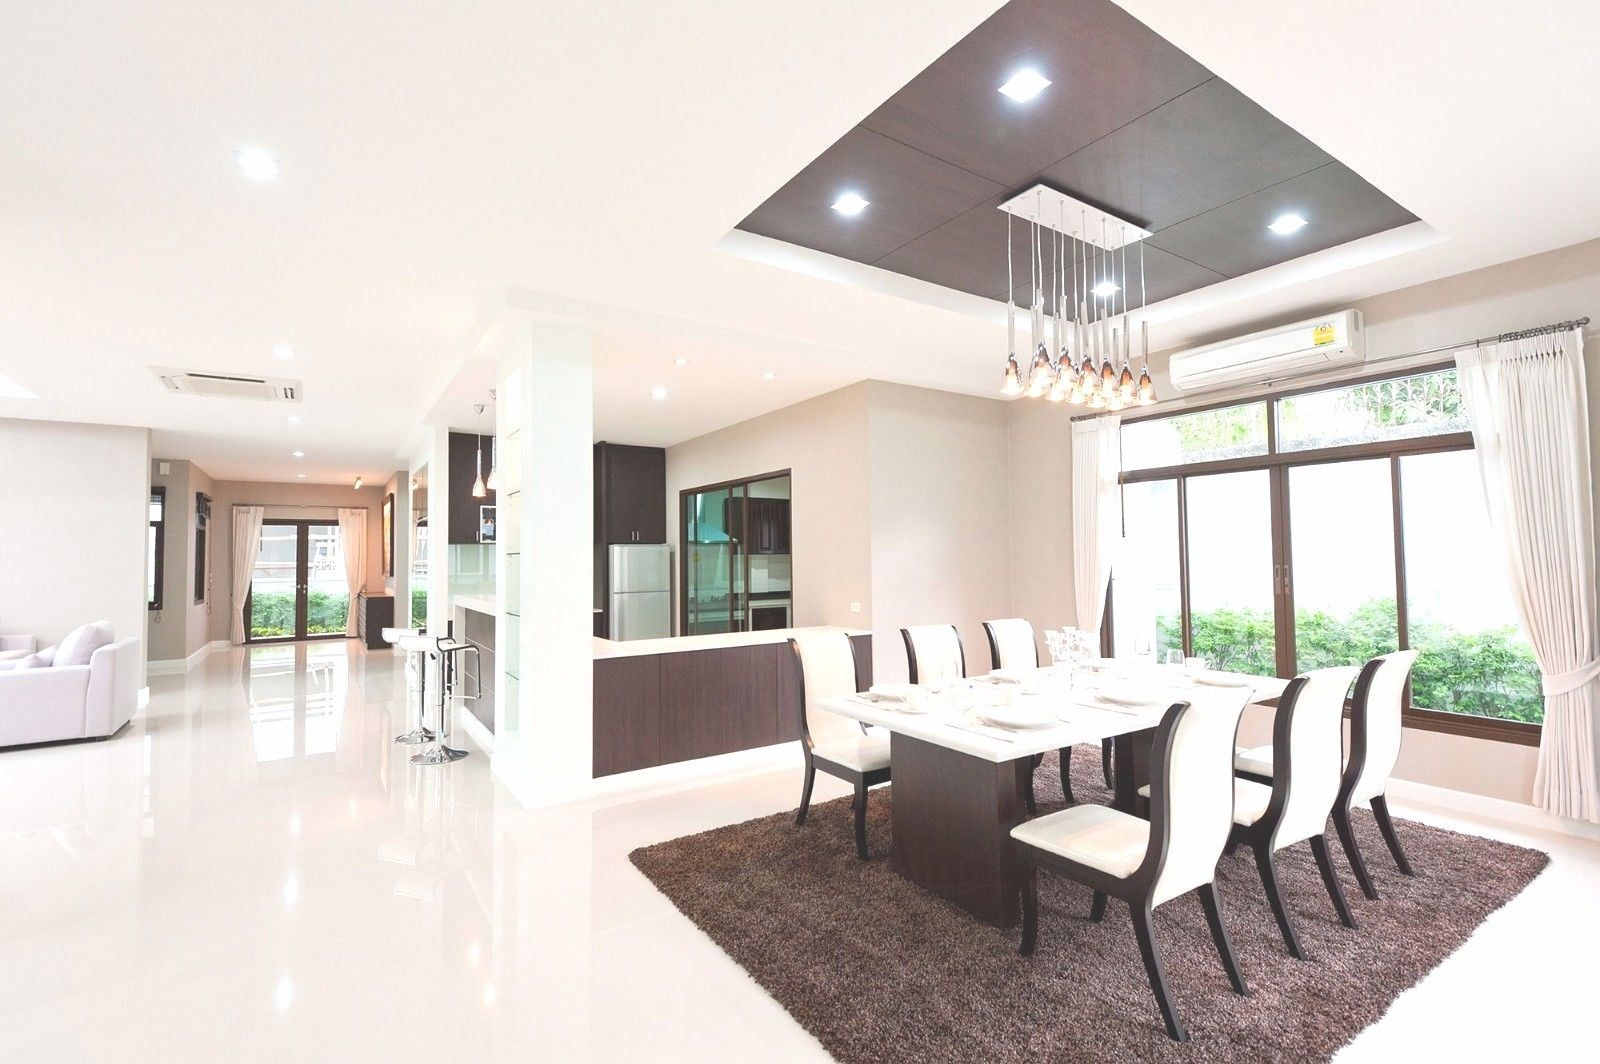 How to choose the right lighting in the house?